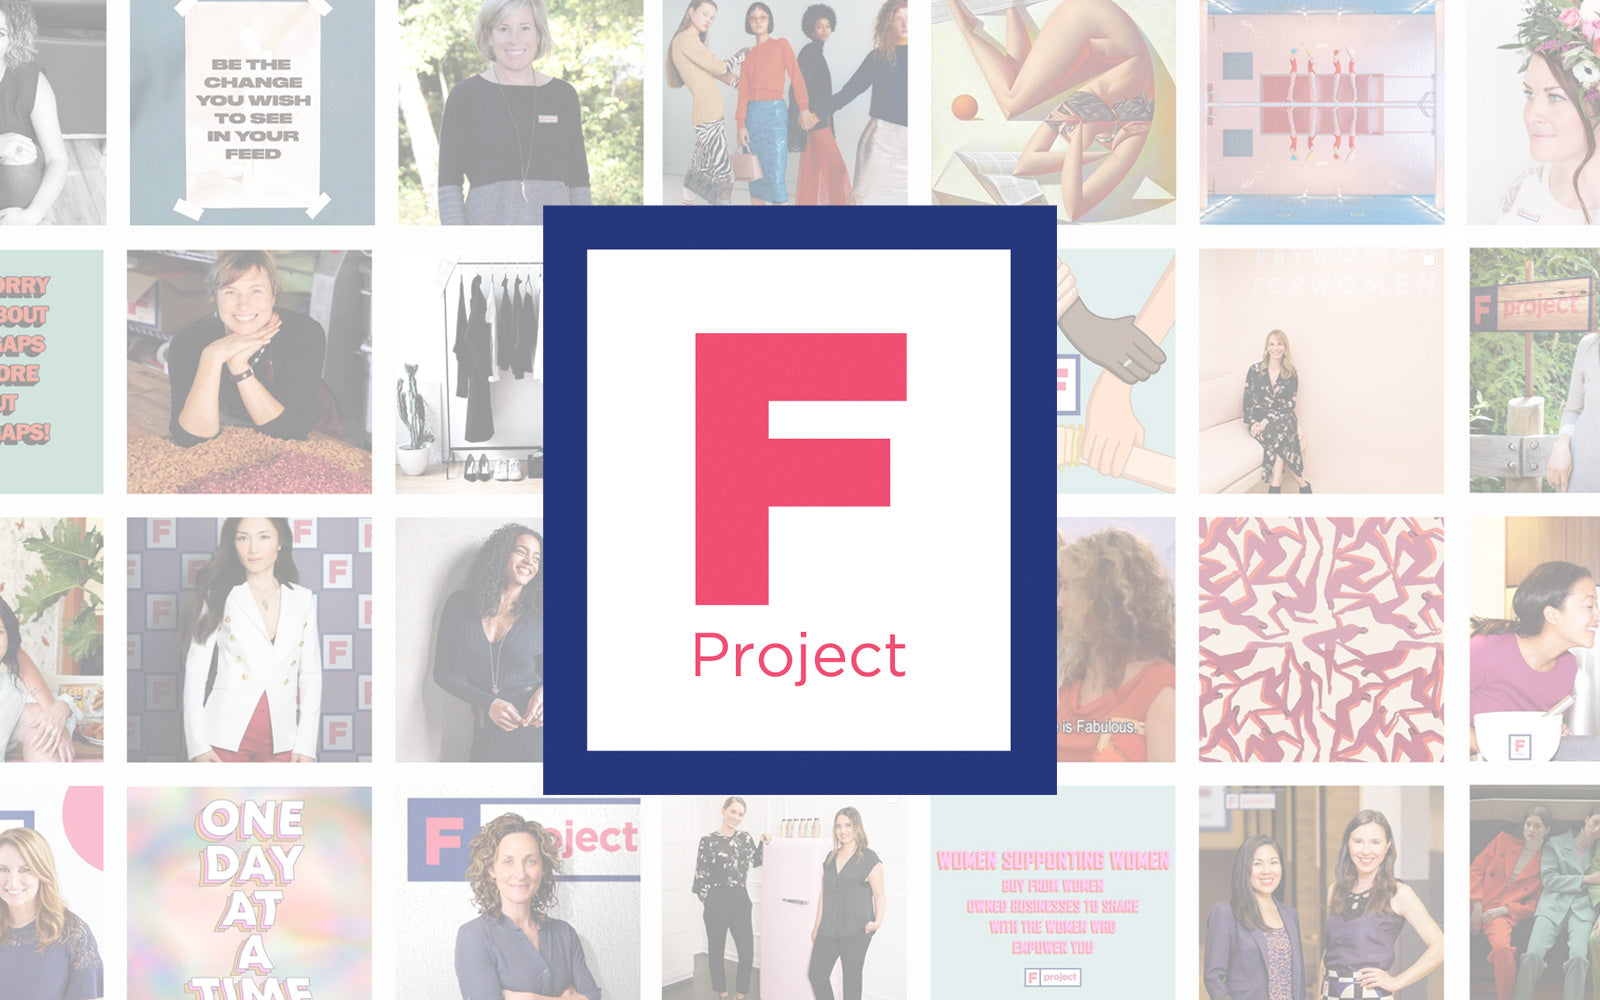 Sue Delegan and Kim Hehir, Founders of Brutus Broth, Join The F Project